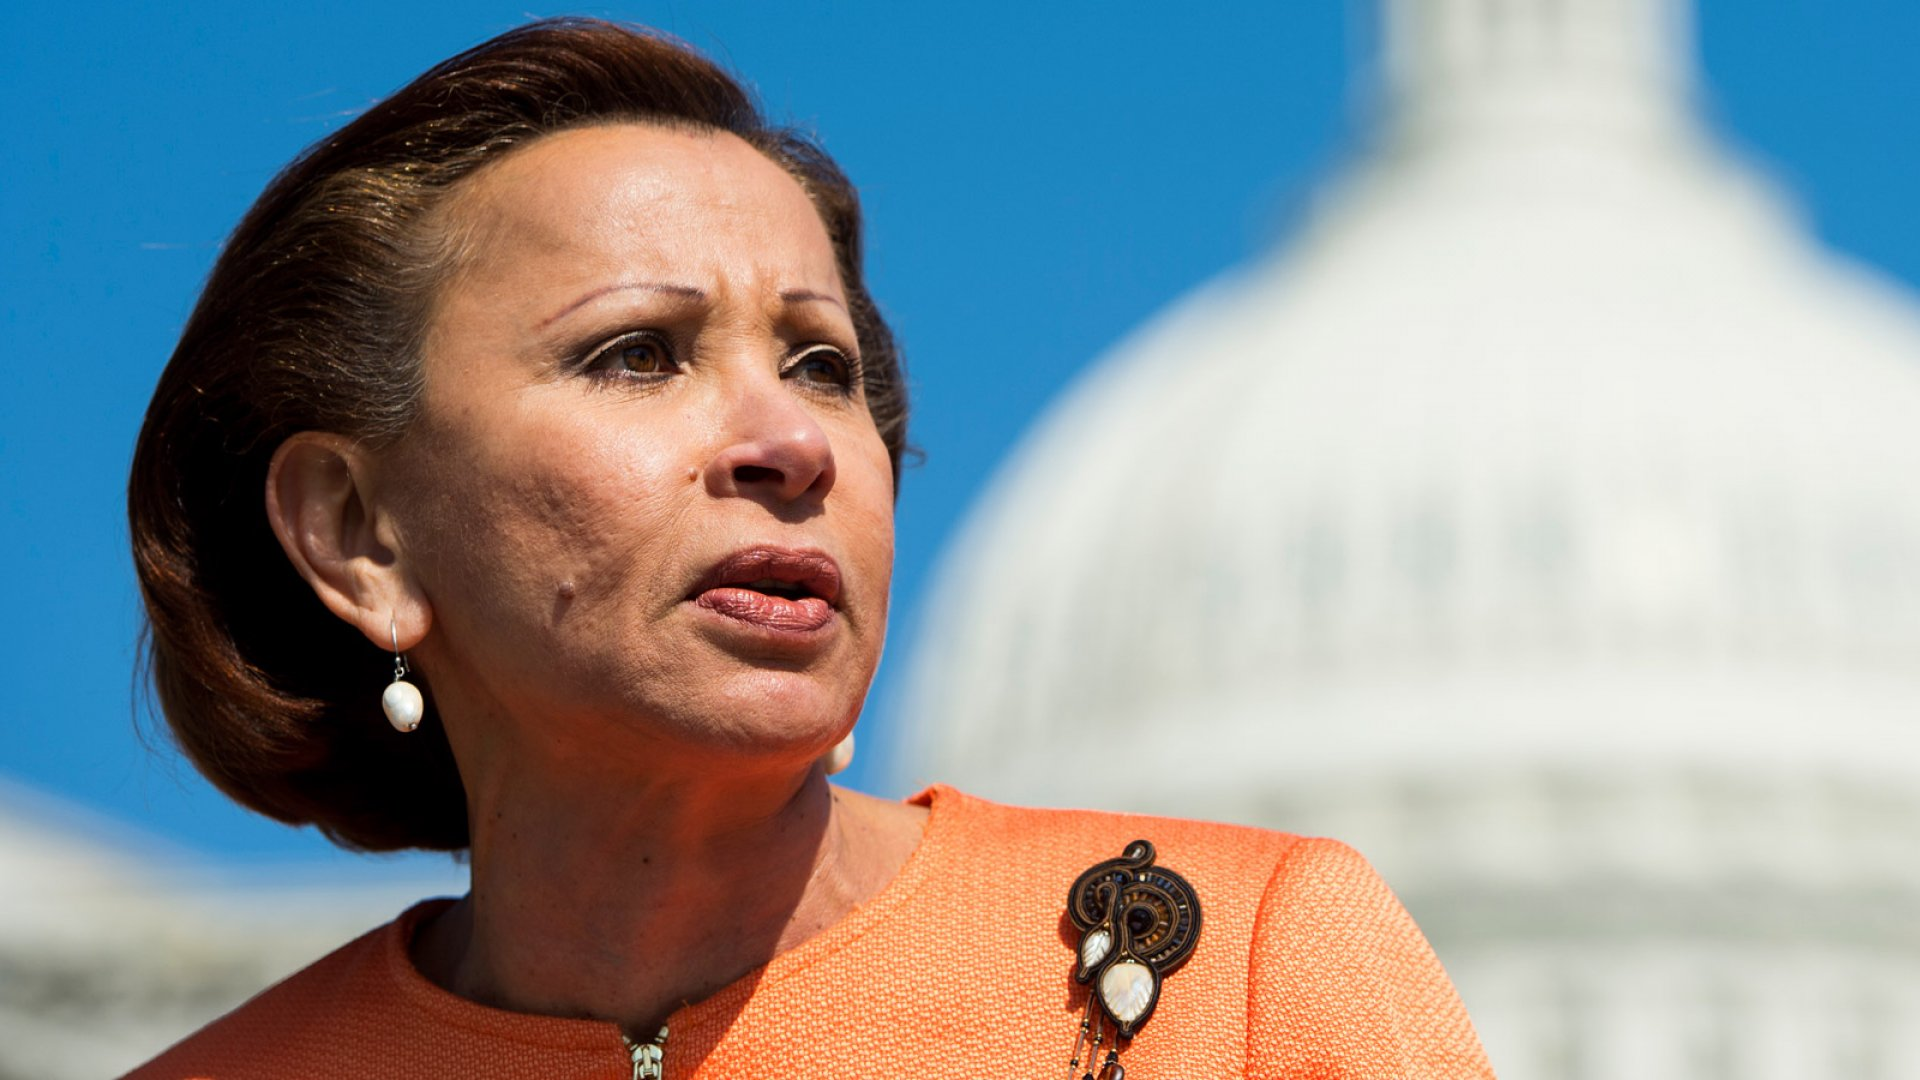 Among other lawmakers, Nydia Velázquez, (D., N.Y.) has criticized the SBA's introduction of programs that weren't authorized by Congress.